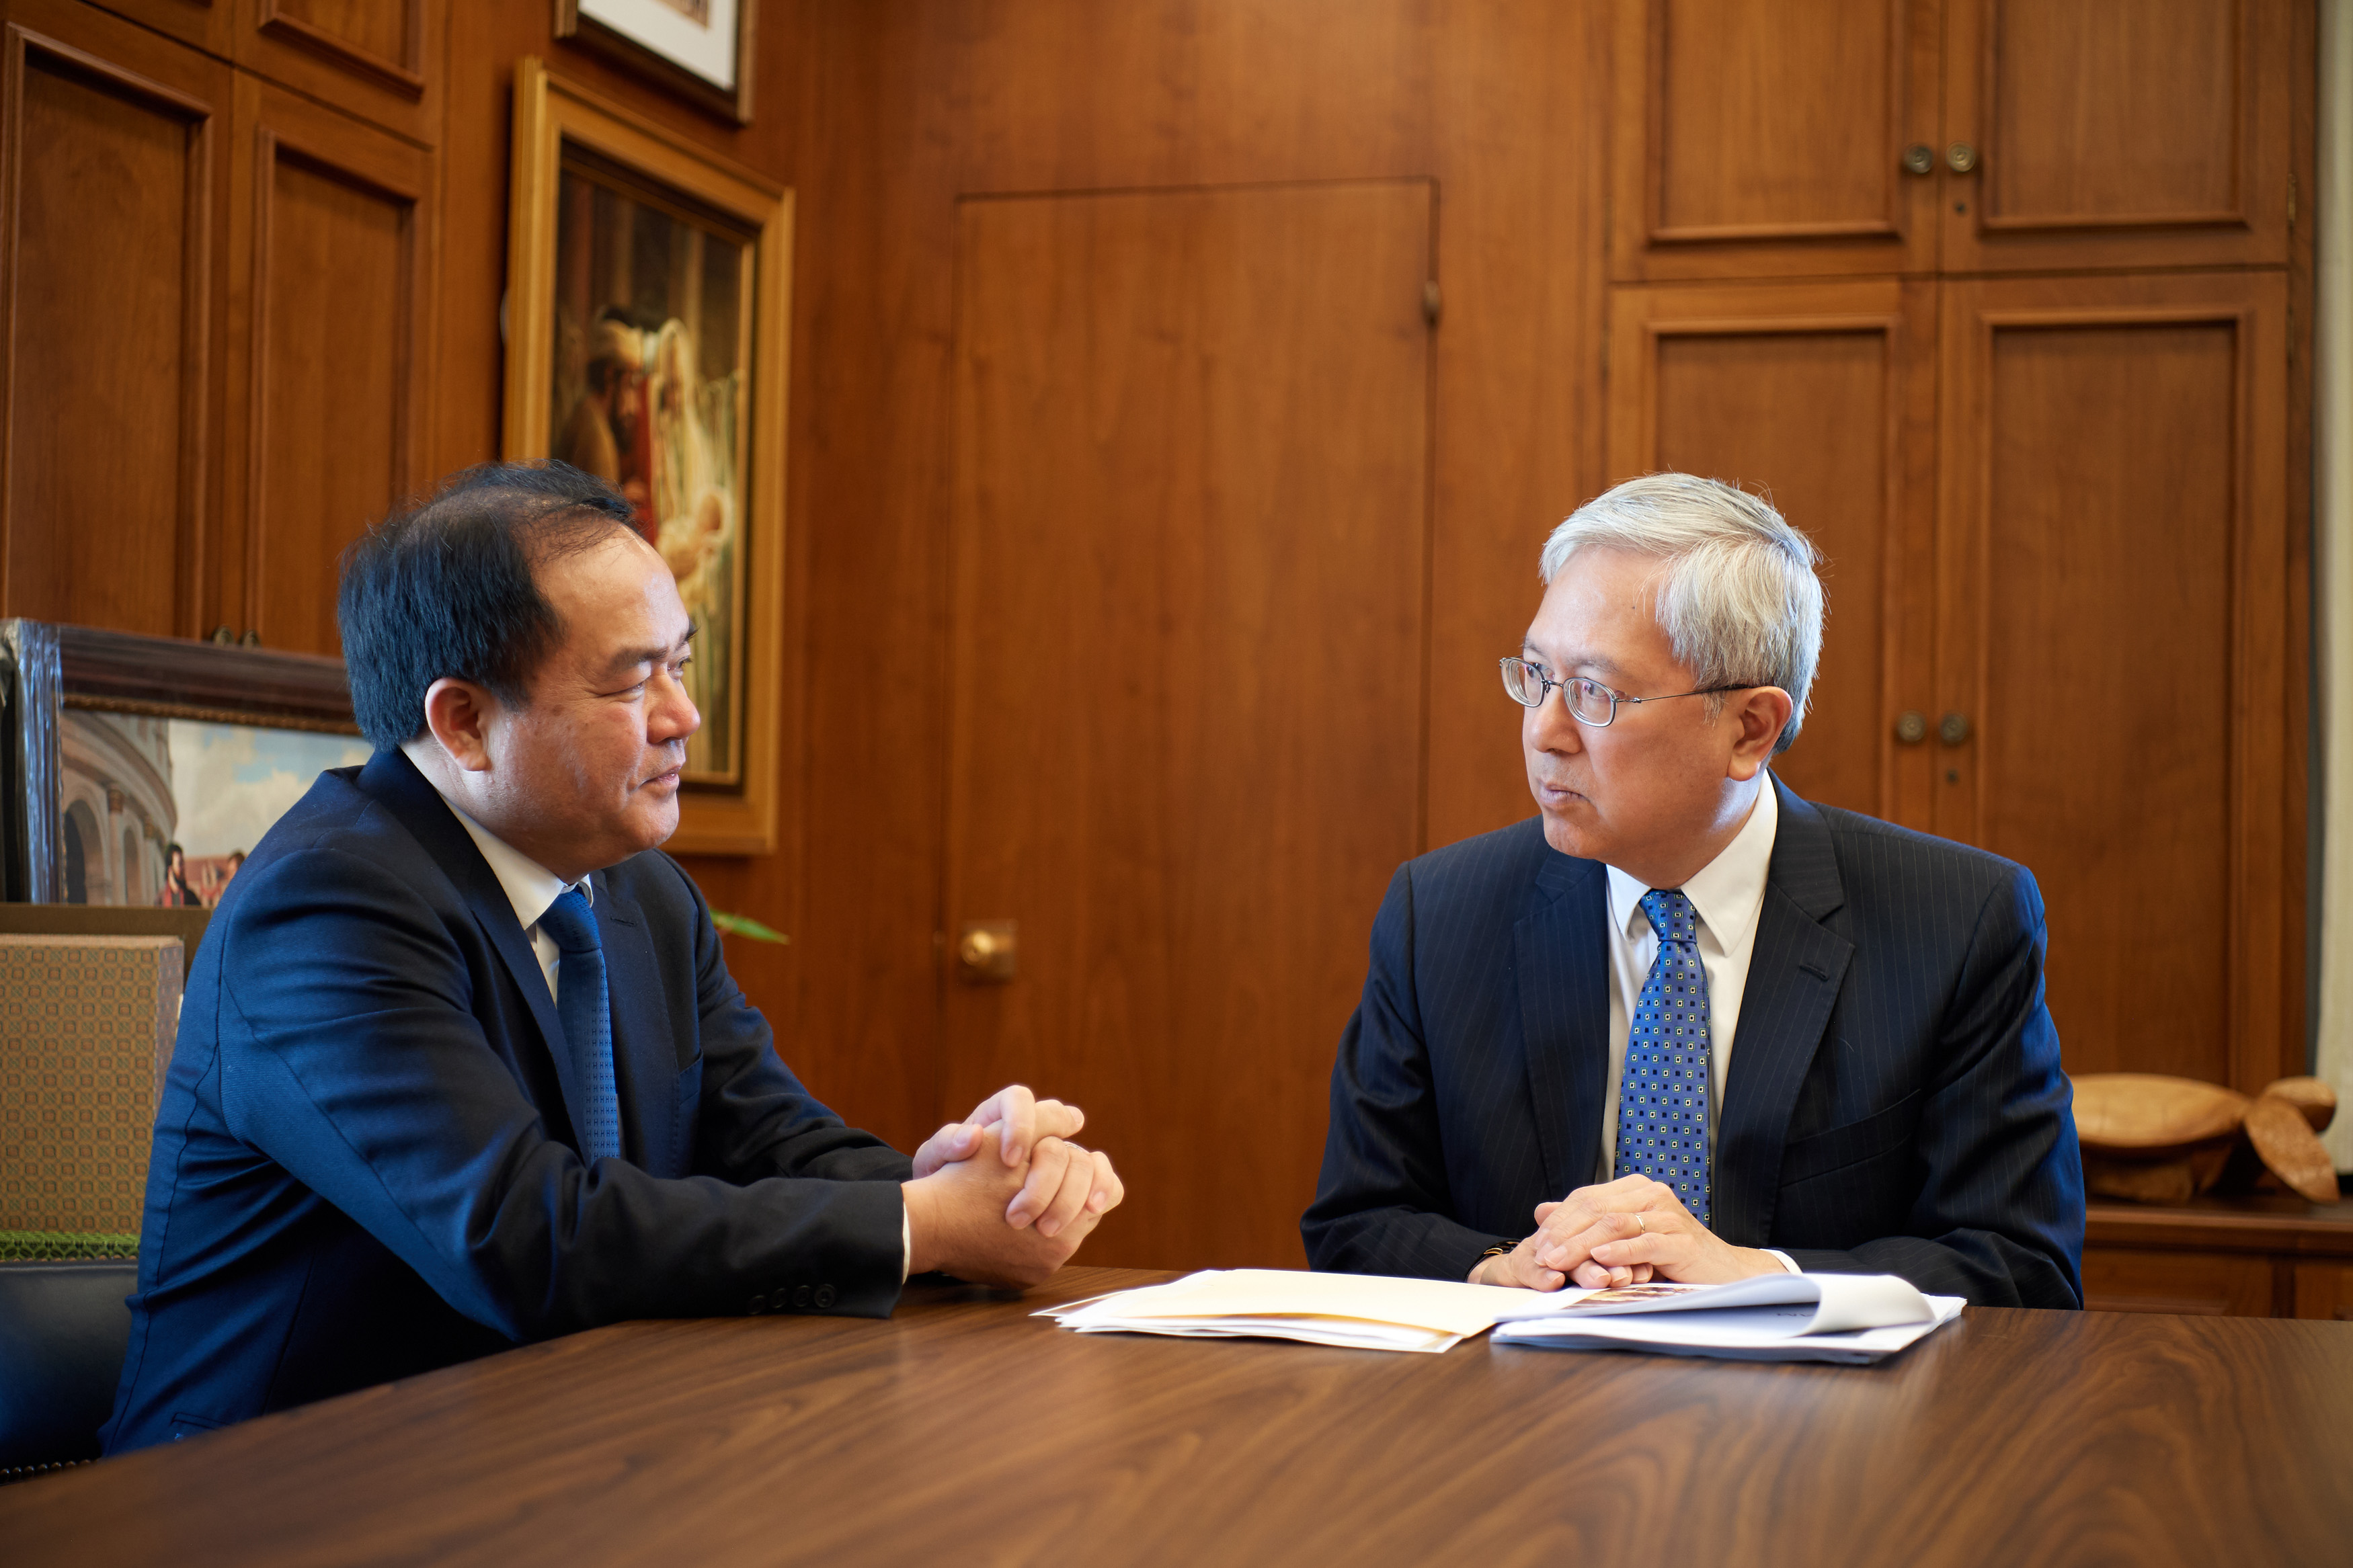 Elder Gerrit W. Gong of the Quorum of the Twelve Apostles meets with Mr. Vu Chien Thang, chairman of the Committee for Religious Affairs in Vietnam.